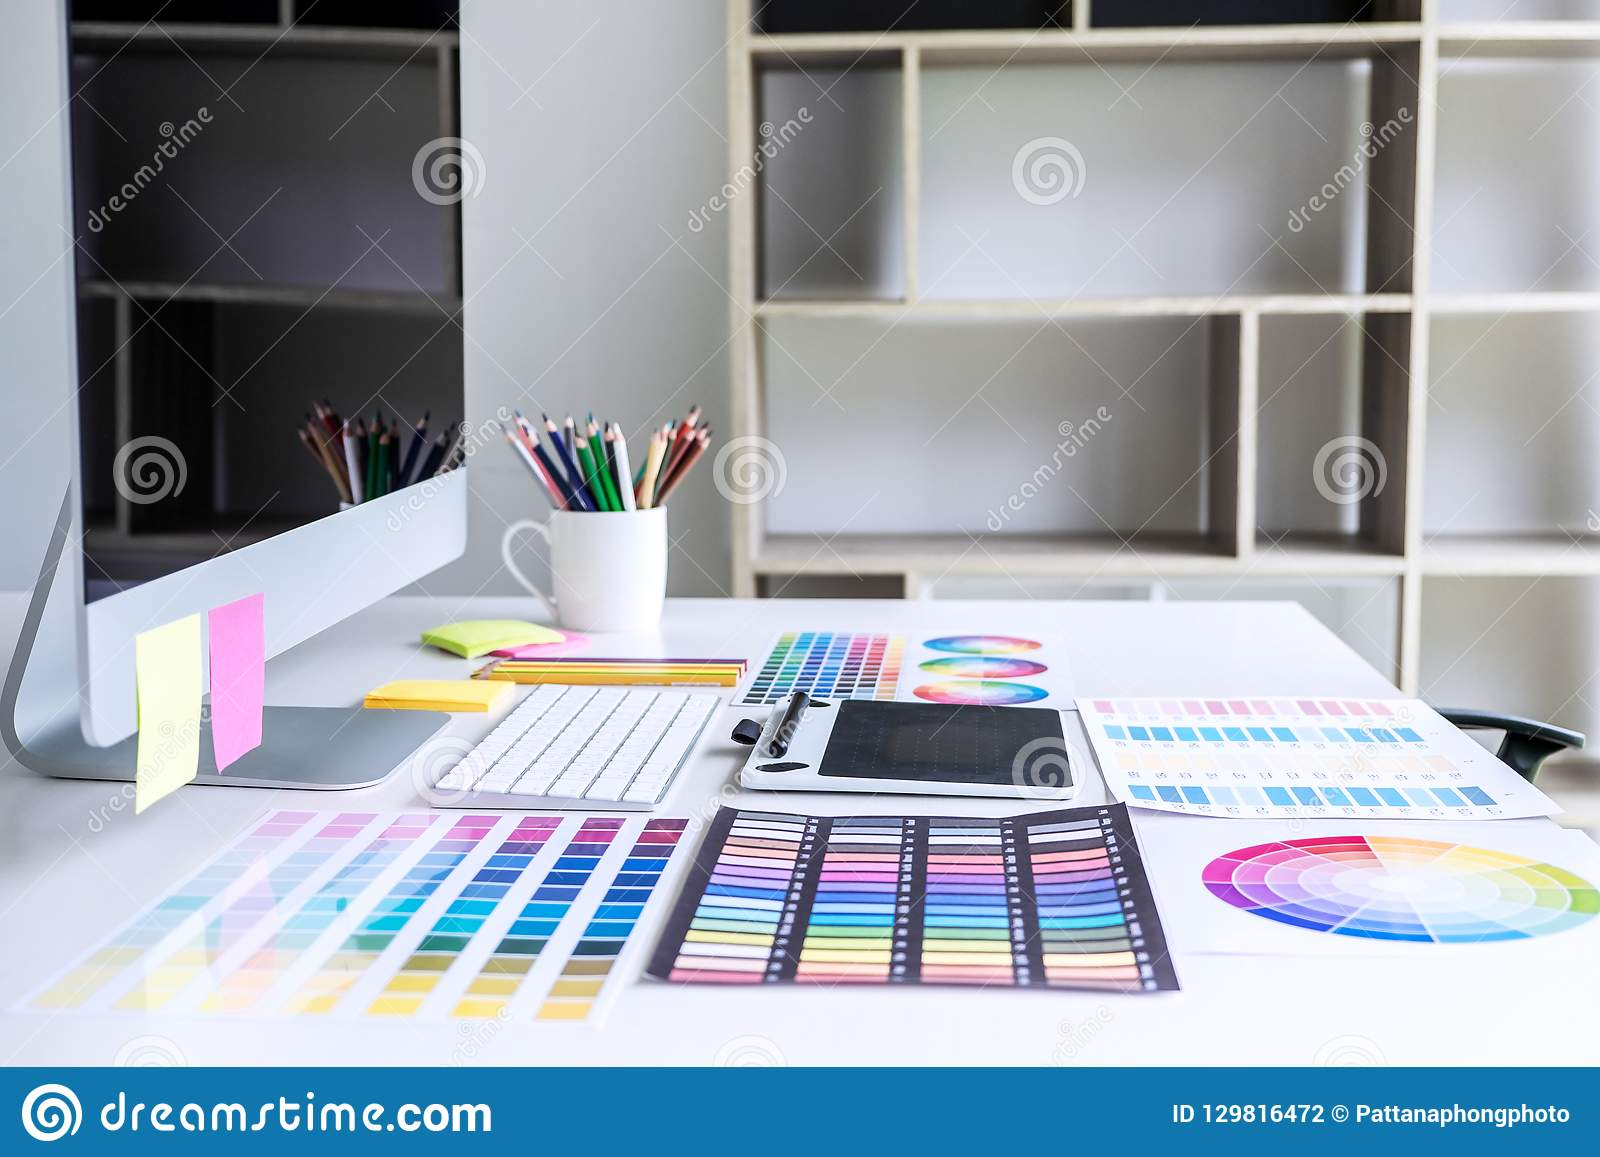 Modern office workplace with tablet, Graphic designer and color